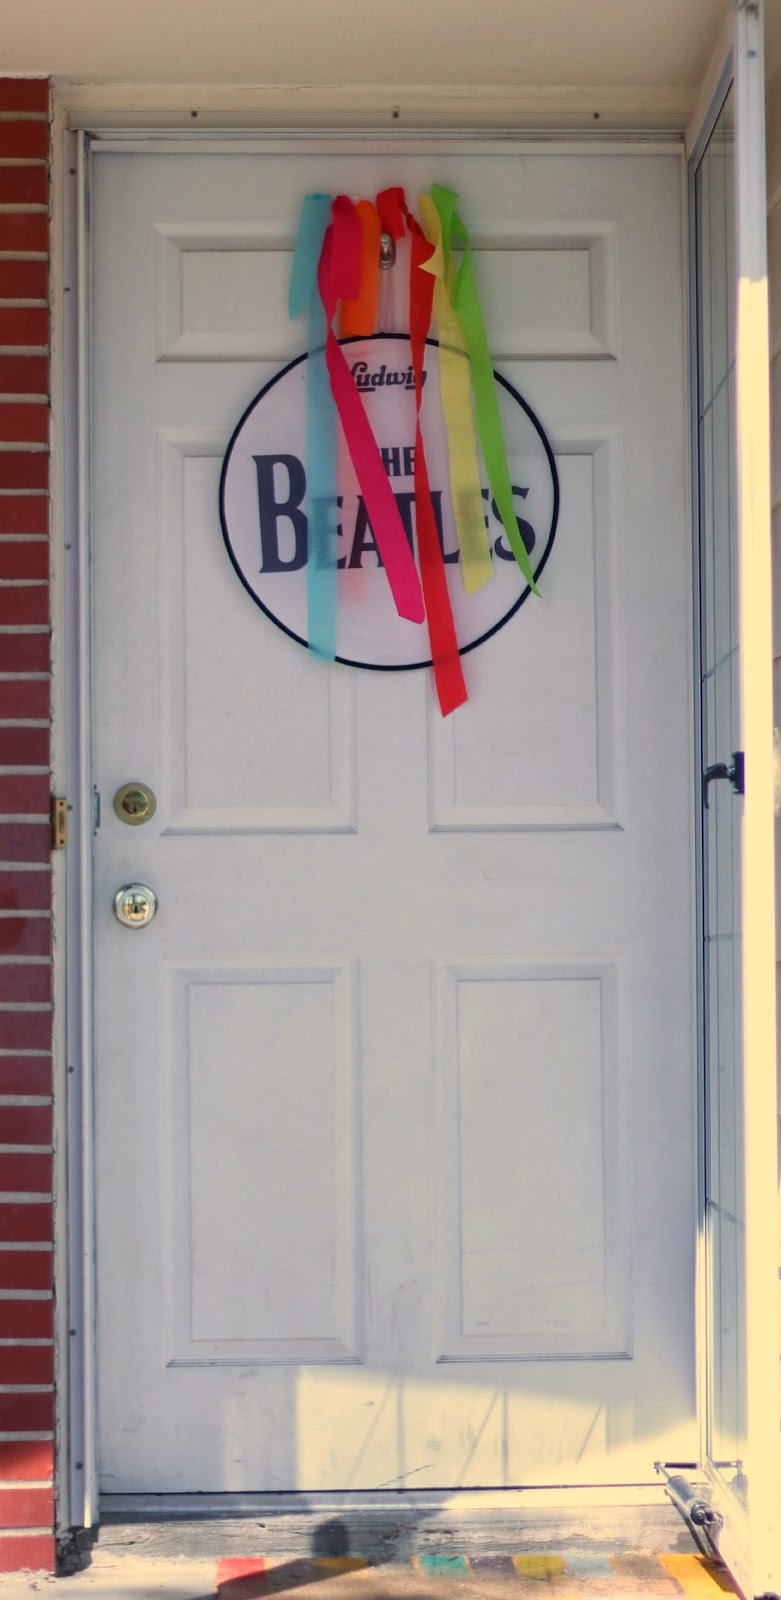 Upon their arrival guests were greeted by some kind of sad streamers and a Beatles sign on the front door. It got better though. : door streamers - pezcame.com